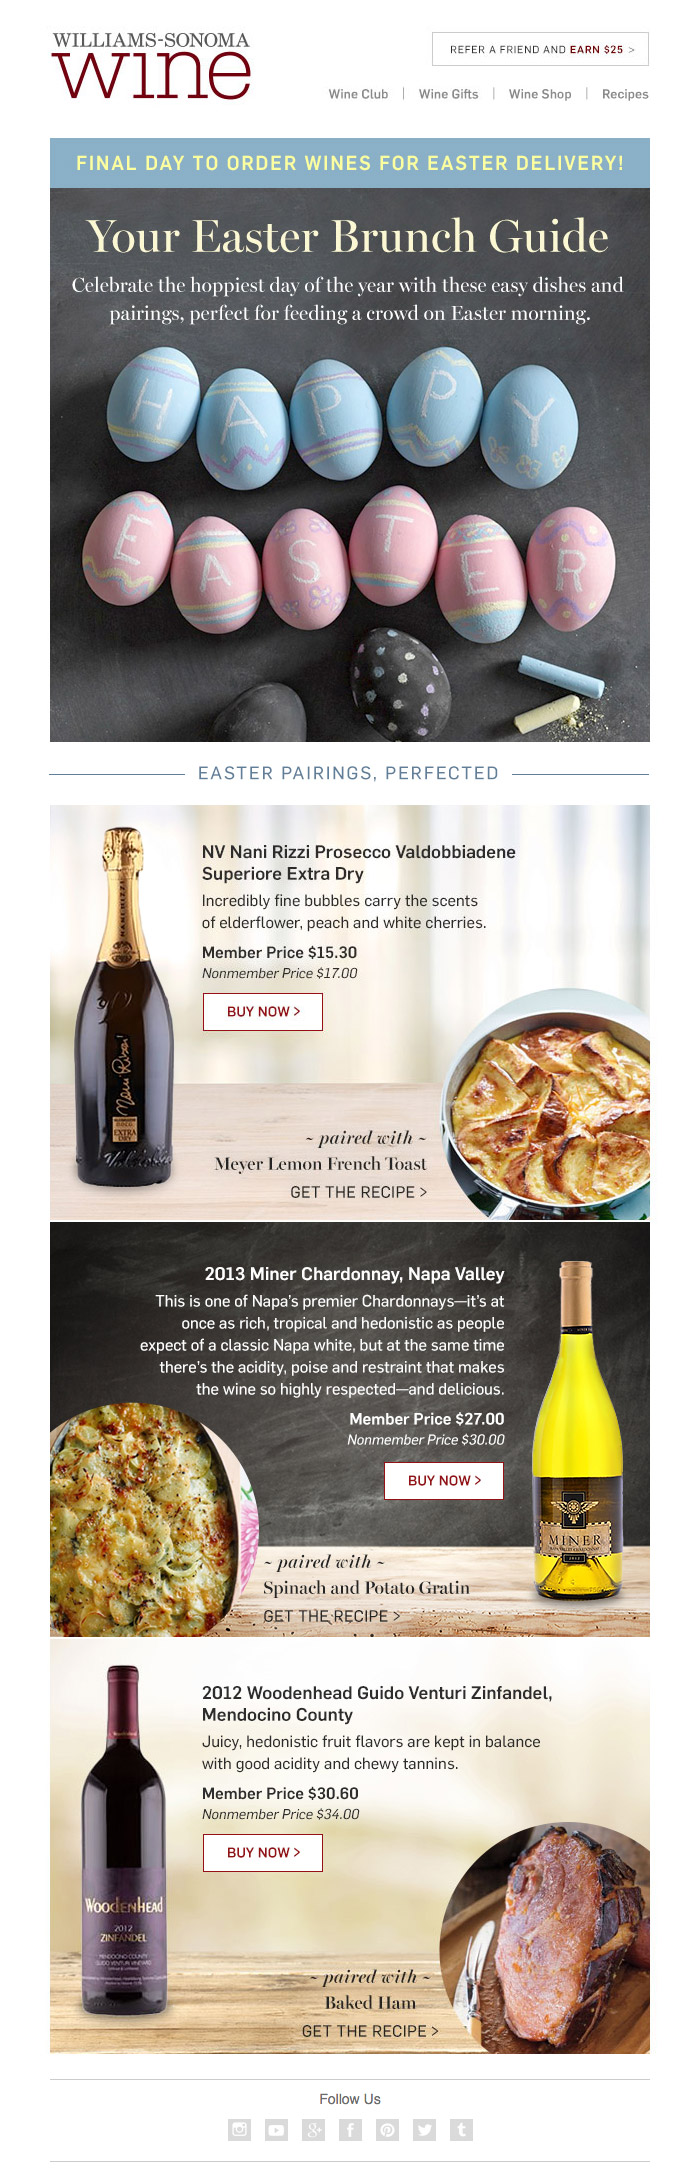 Williams-Sonoma Wine 'Spring Wines' HTML email